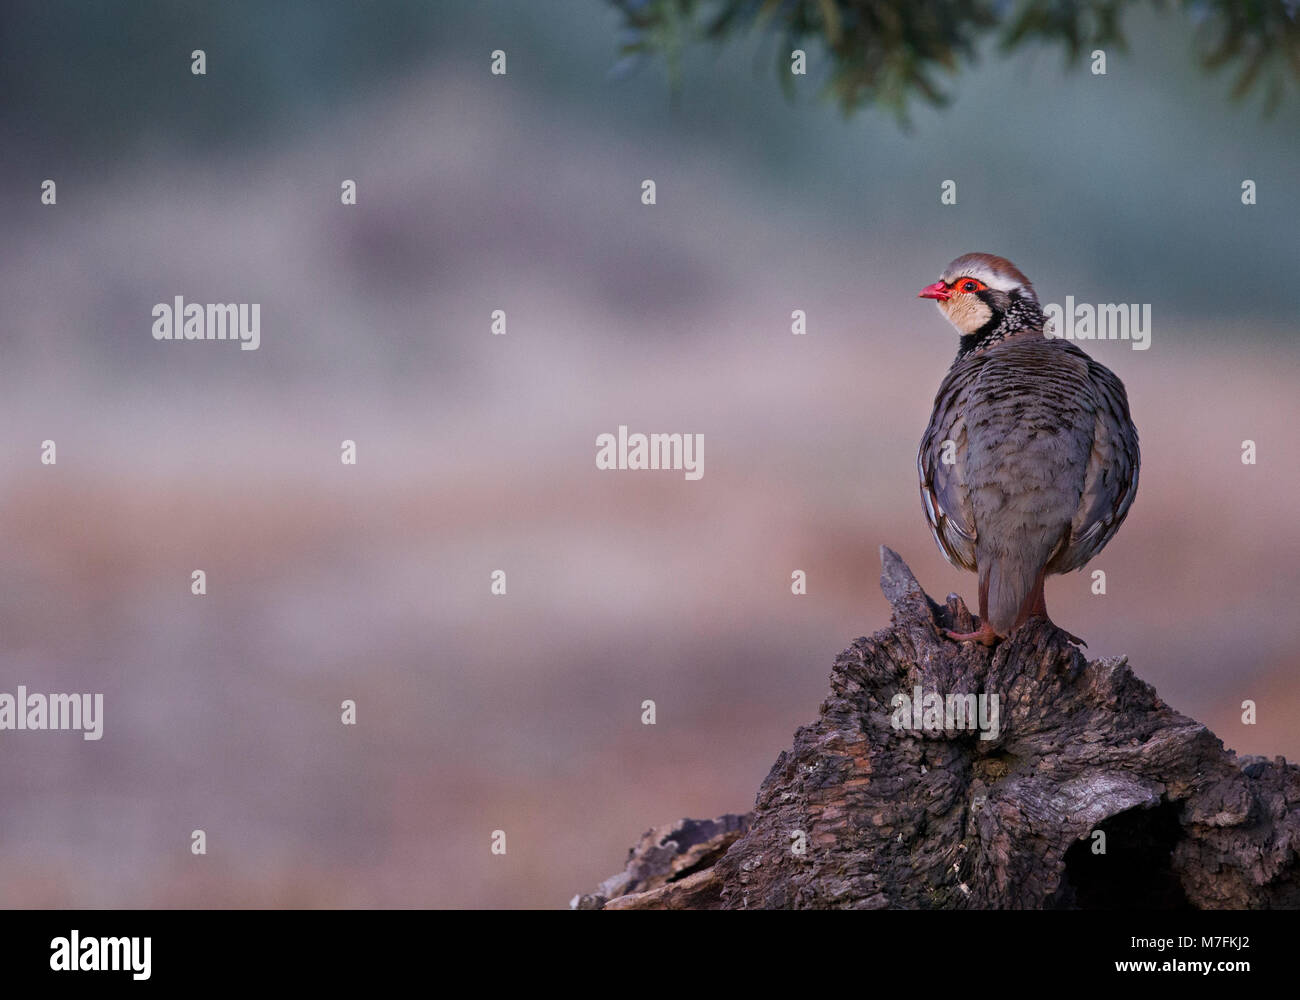 Red-legged Partridge on an old tree stump in a Spanish olive grove - Stock Image